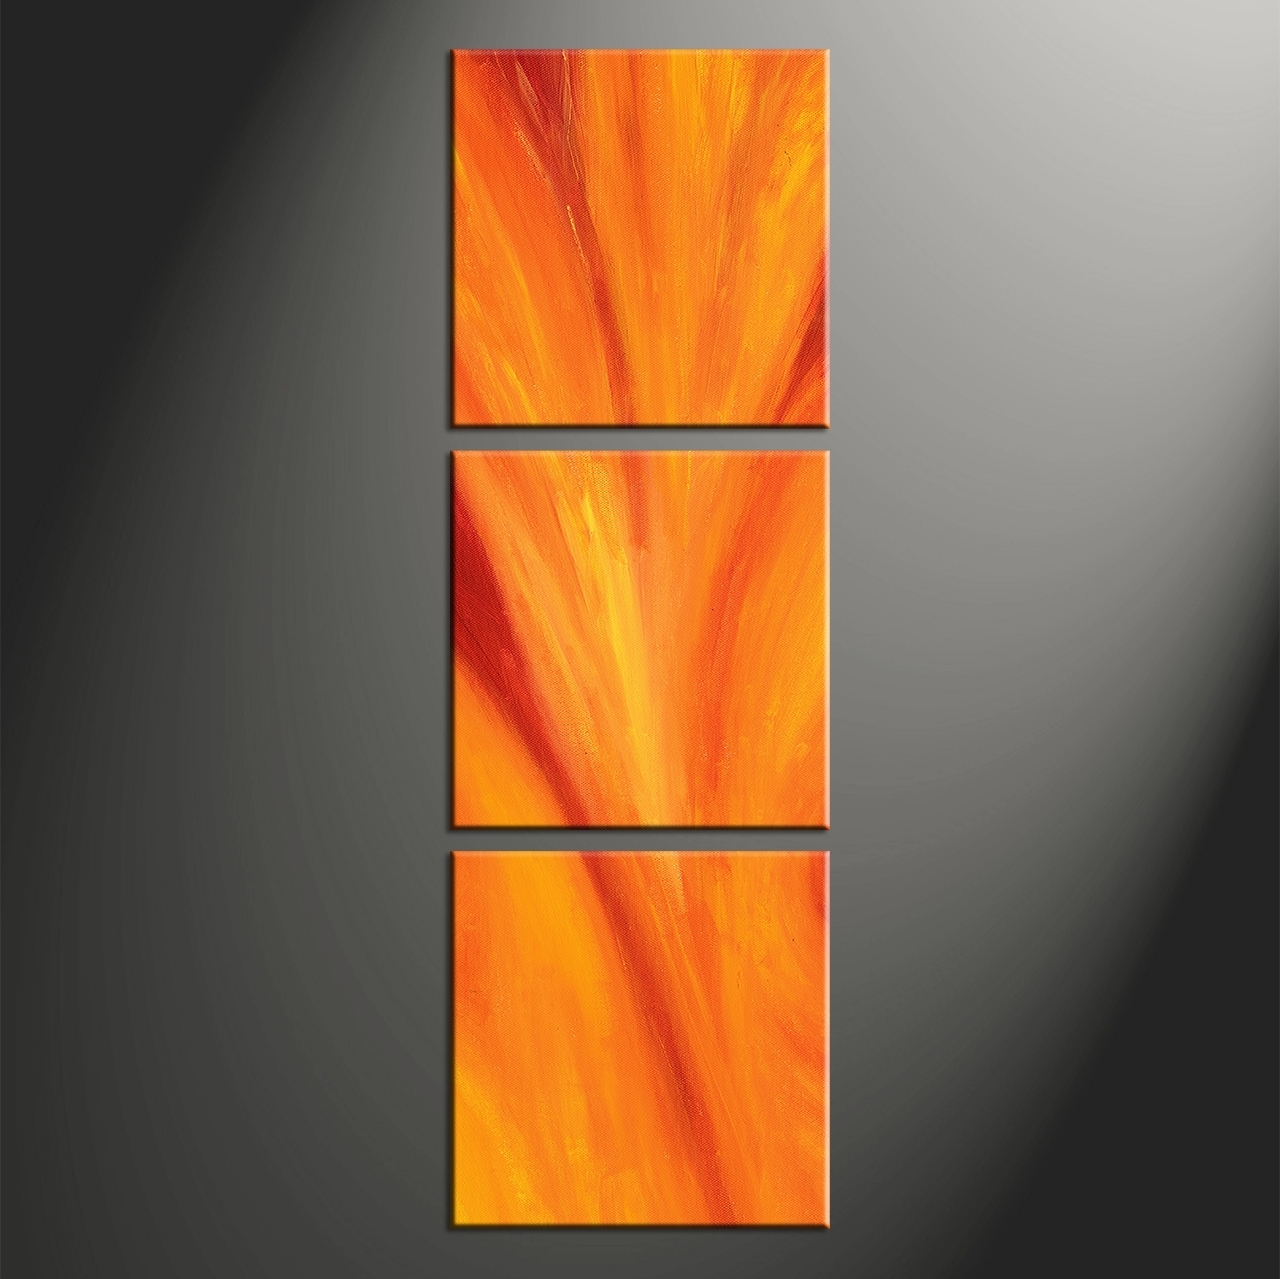 Piece Oil Fabulous Orange Wall Art – Wall Decoration And Wall Art Ideas Intended For Orange Wall Art (View 10 of 20)